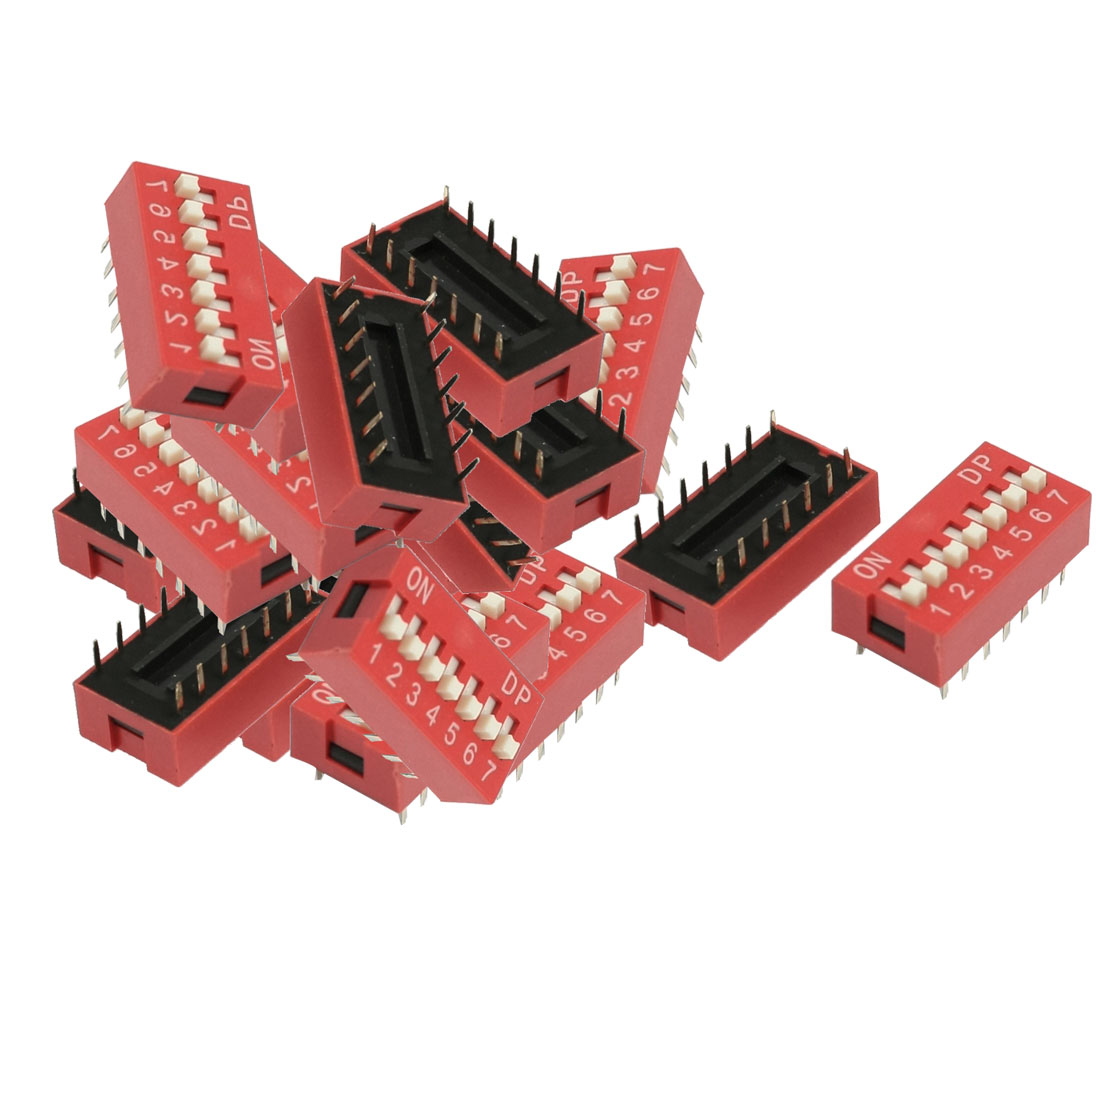 24 Pcs 2.54mm Pitch 7 Position Slide Style DIP Switches Red